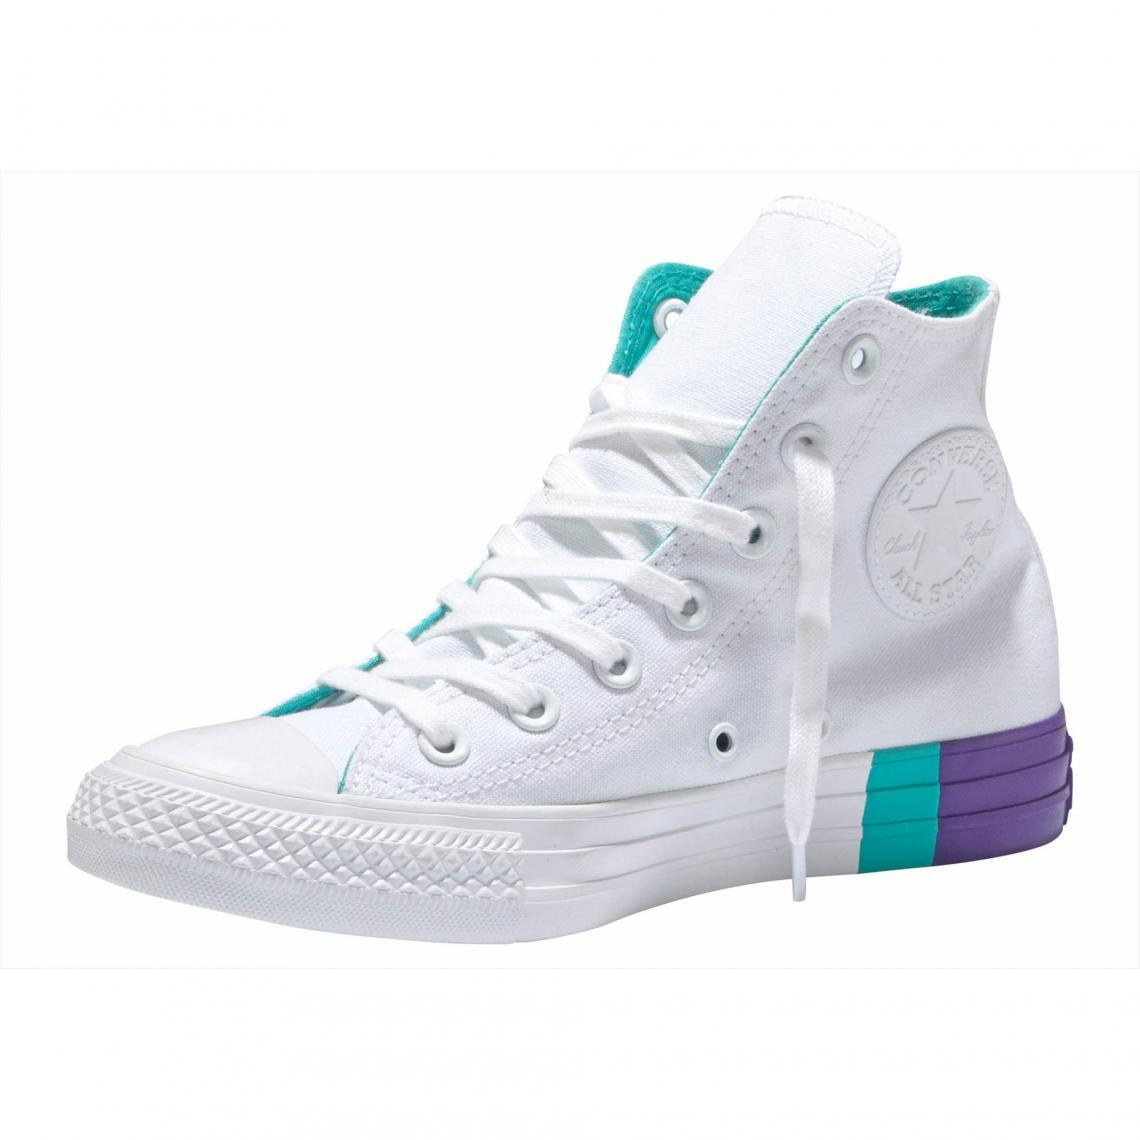 d919bc3058aa3 reduced baskets montantes femme converse chuck taylor all star hi  colorblock blanc violet converse homme f8064